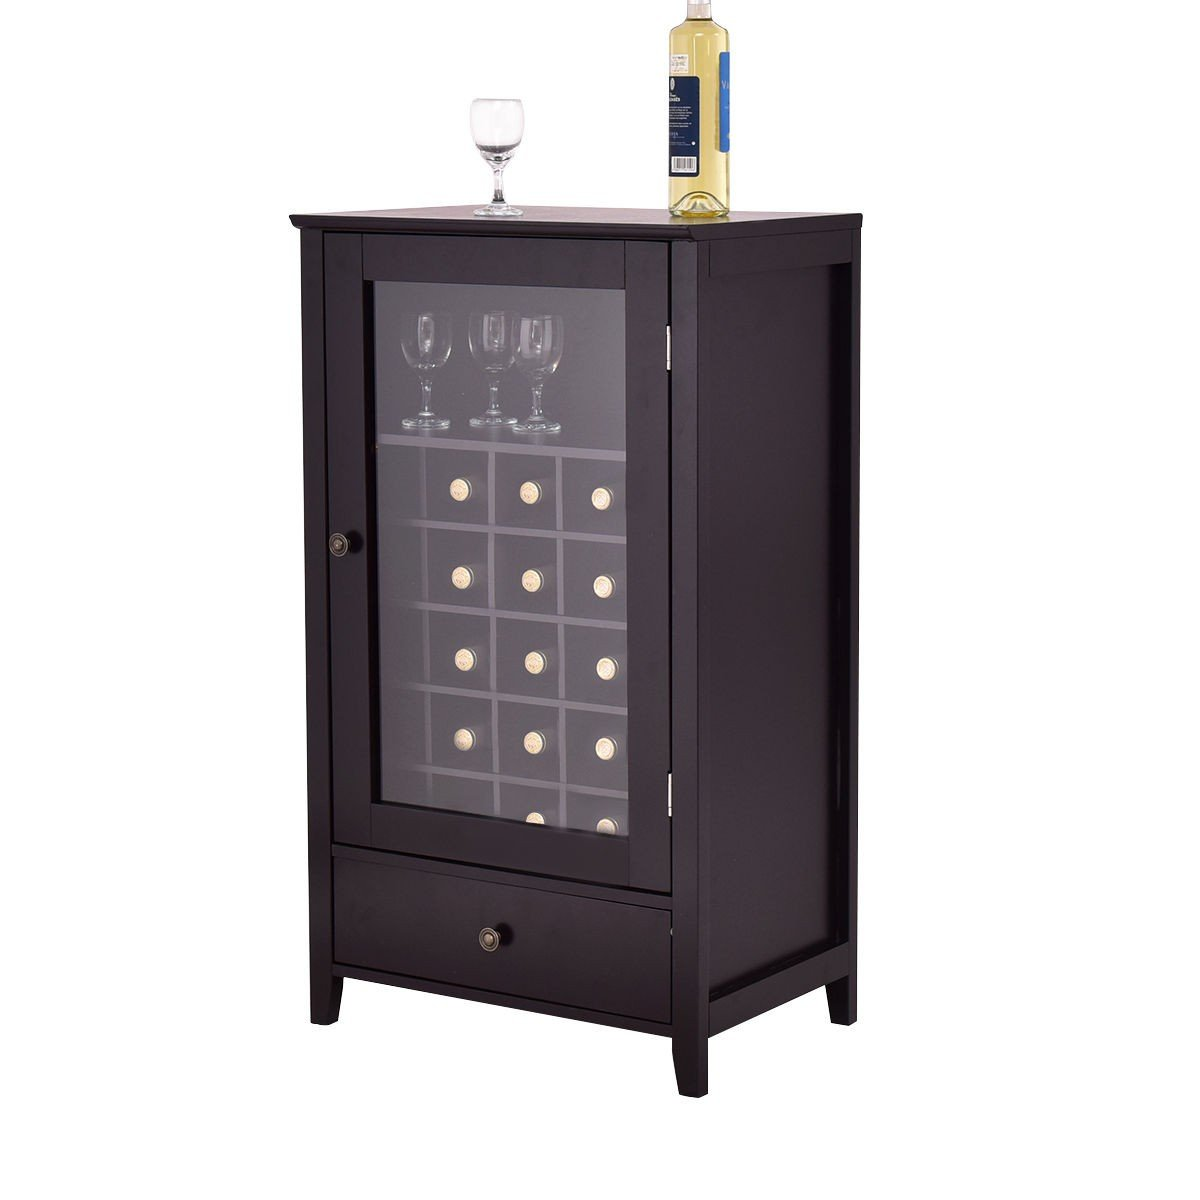 choice Artistic Durable Wooden Home Wine Racks with Drawer Products by choice